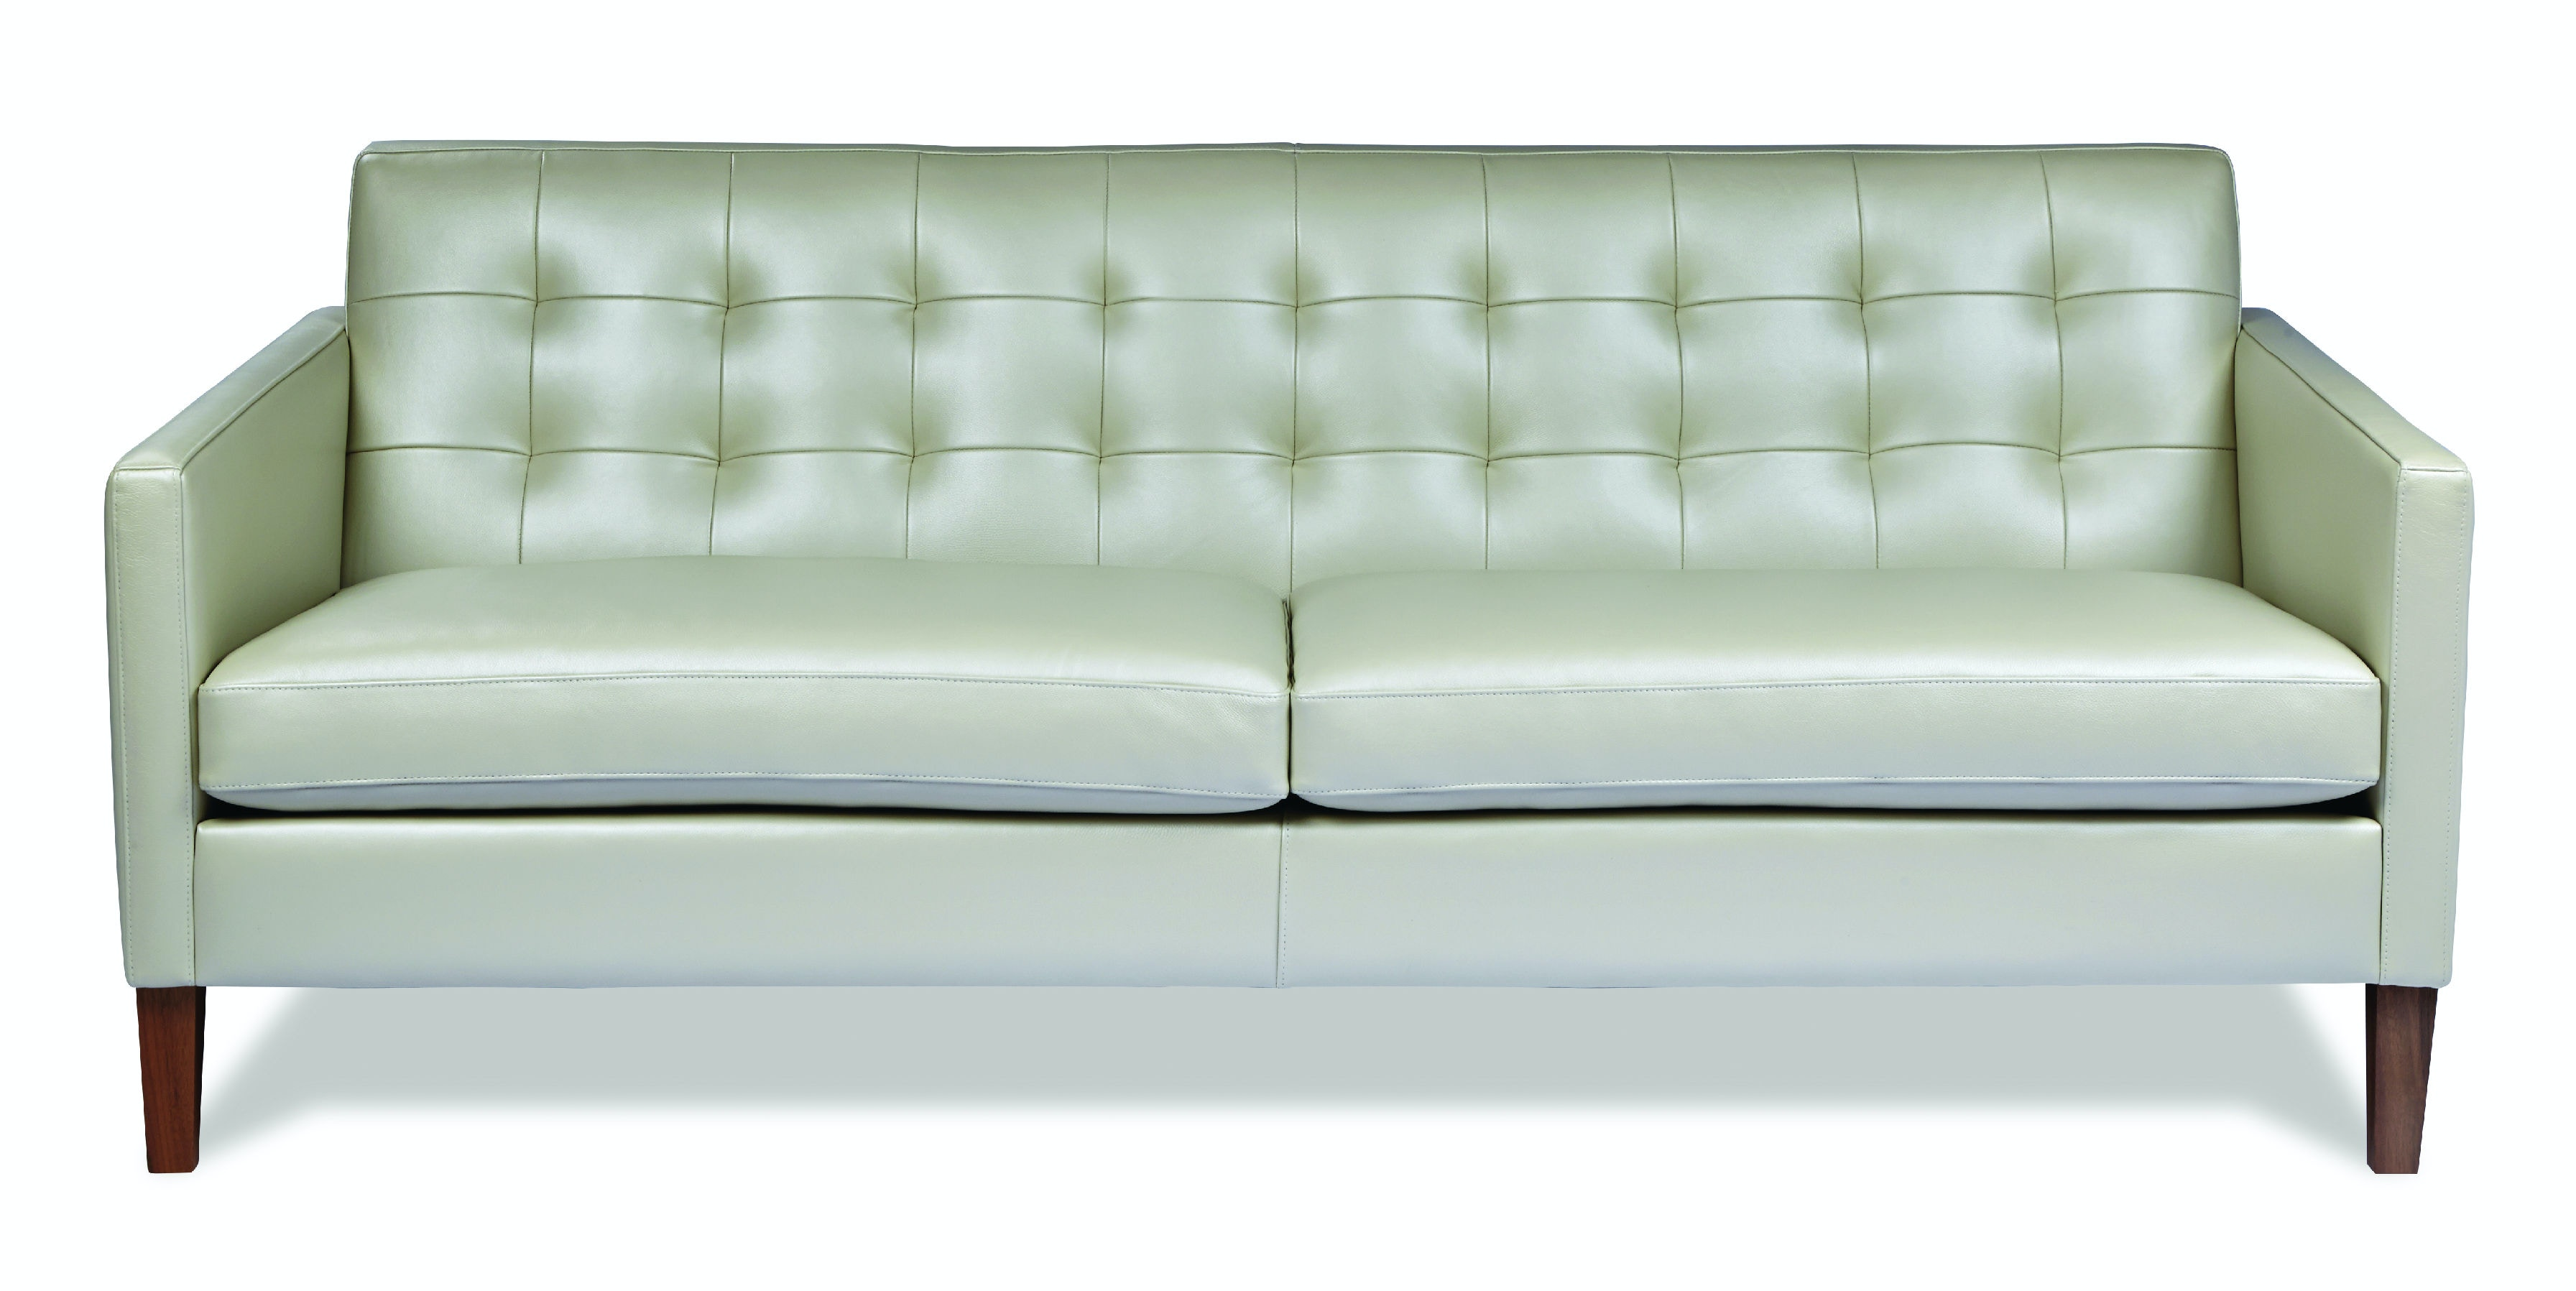 cloud track arm leather two seat cushion sofa best sofas for back and neck support santa clara furniture eastern american ain so2 st